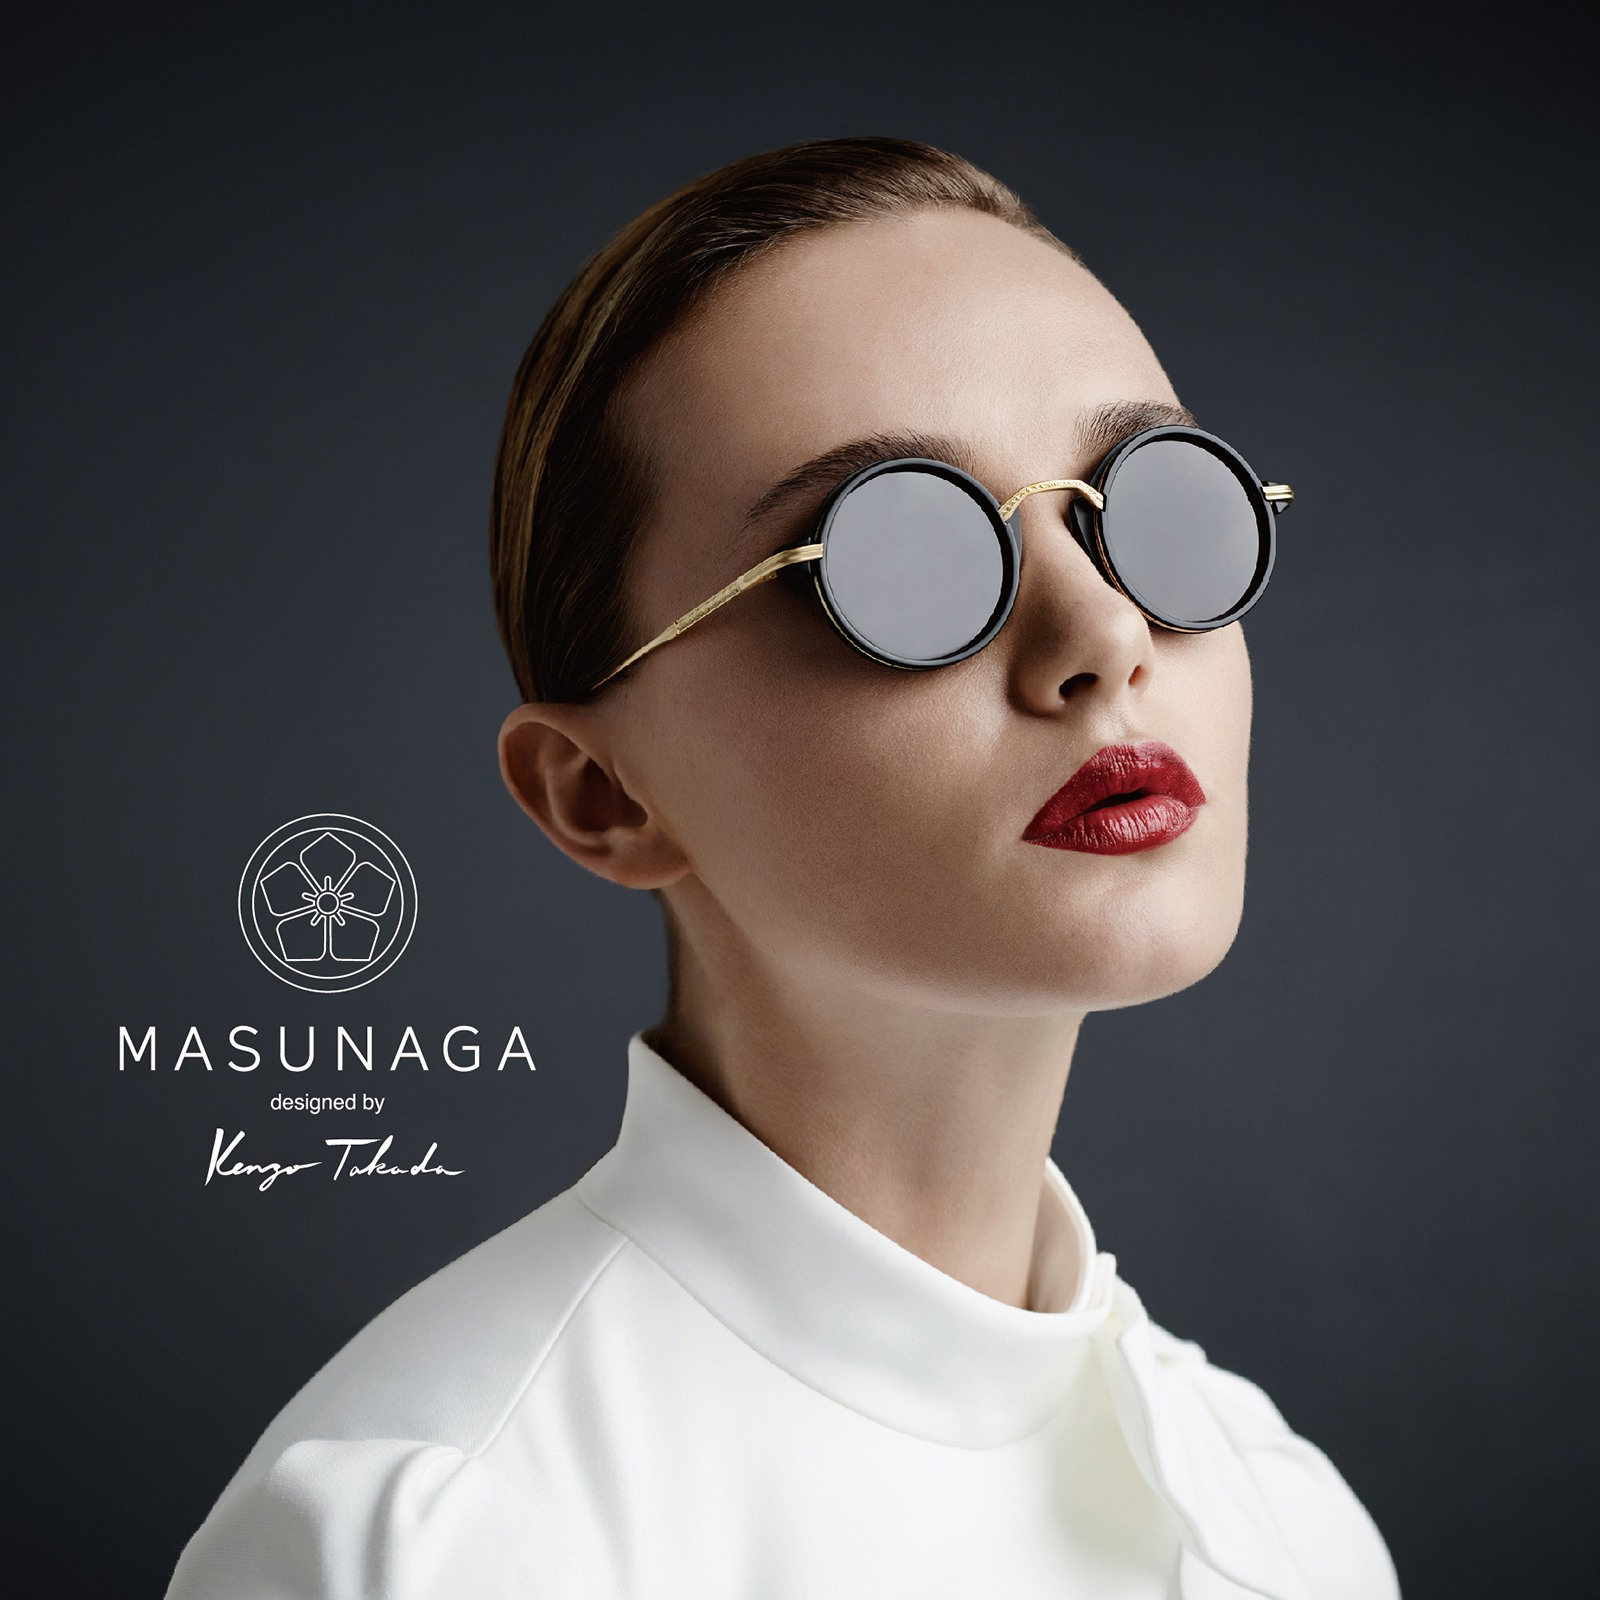 MASUNAGA designed by Kenzo Takada official